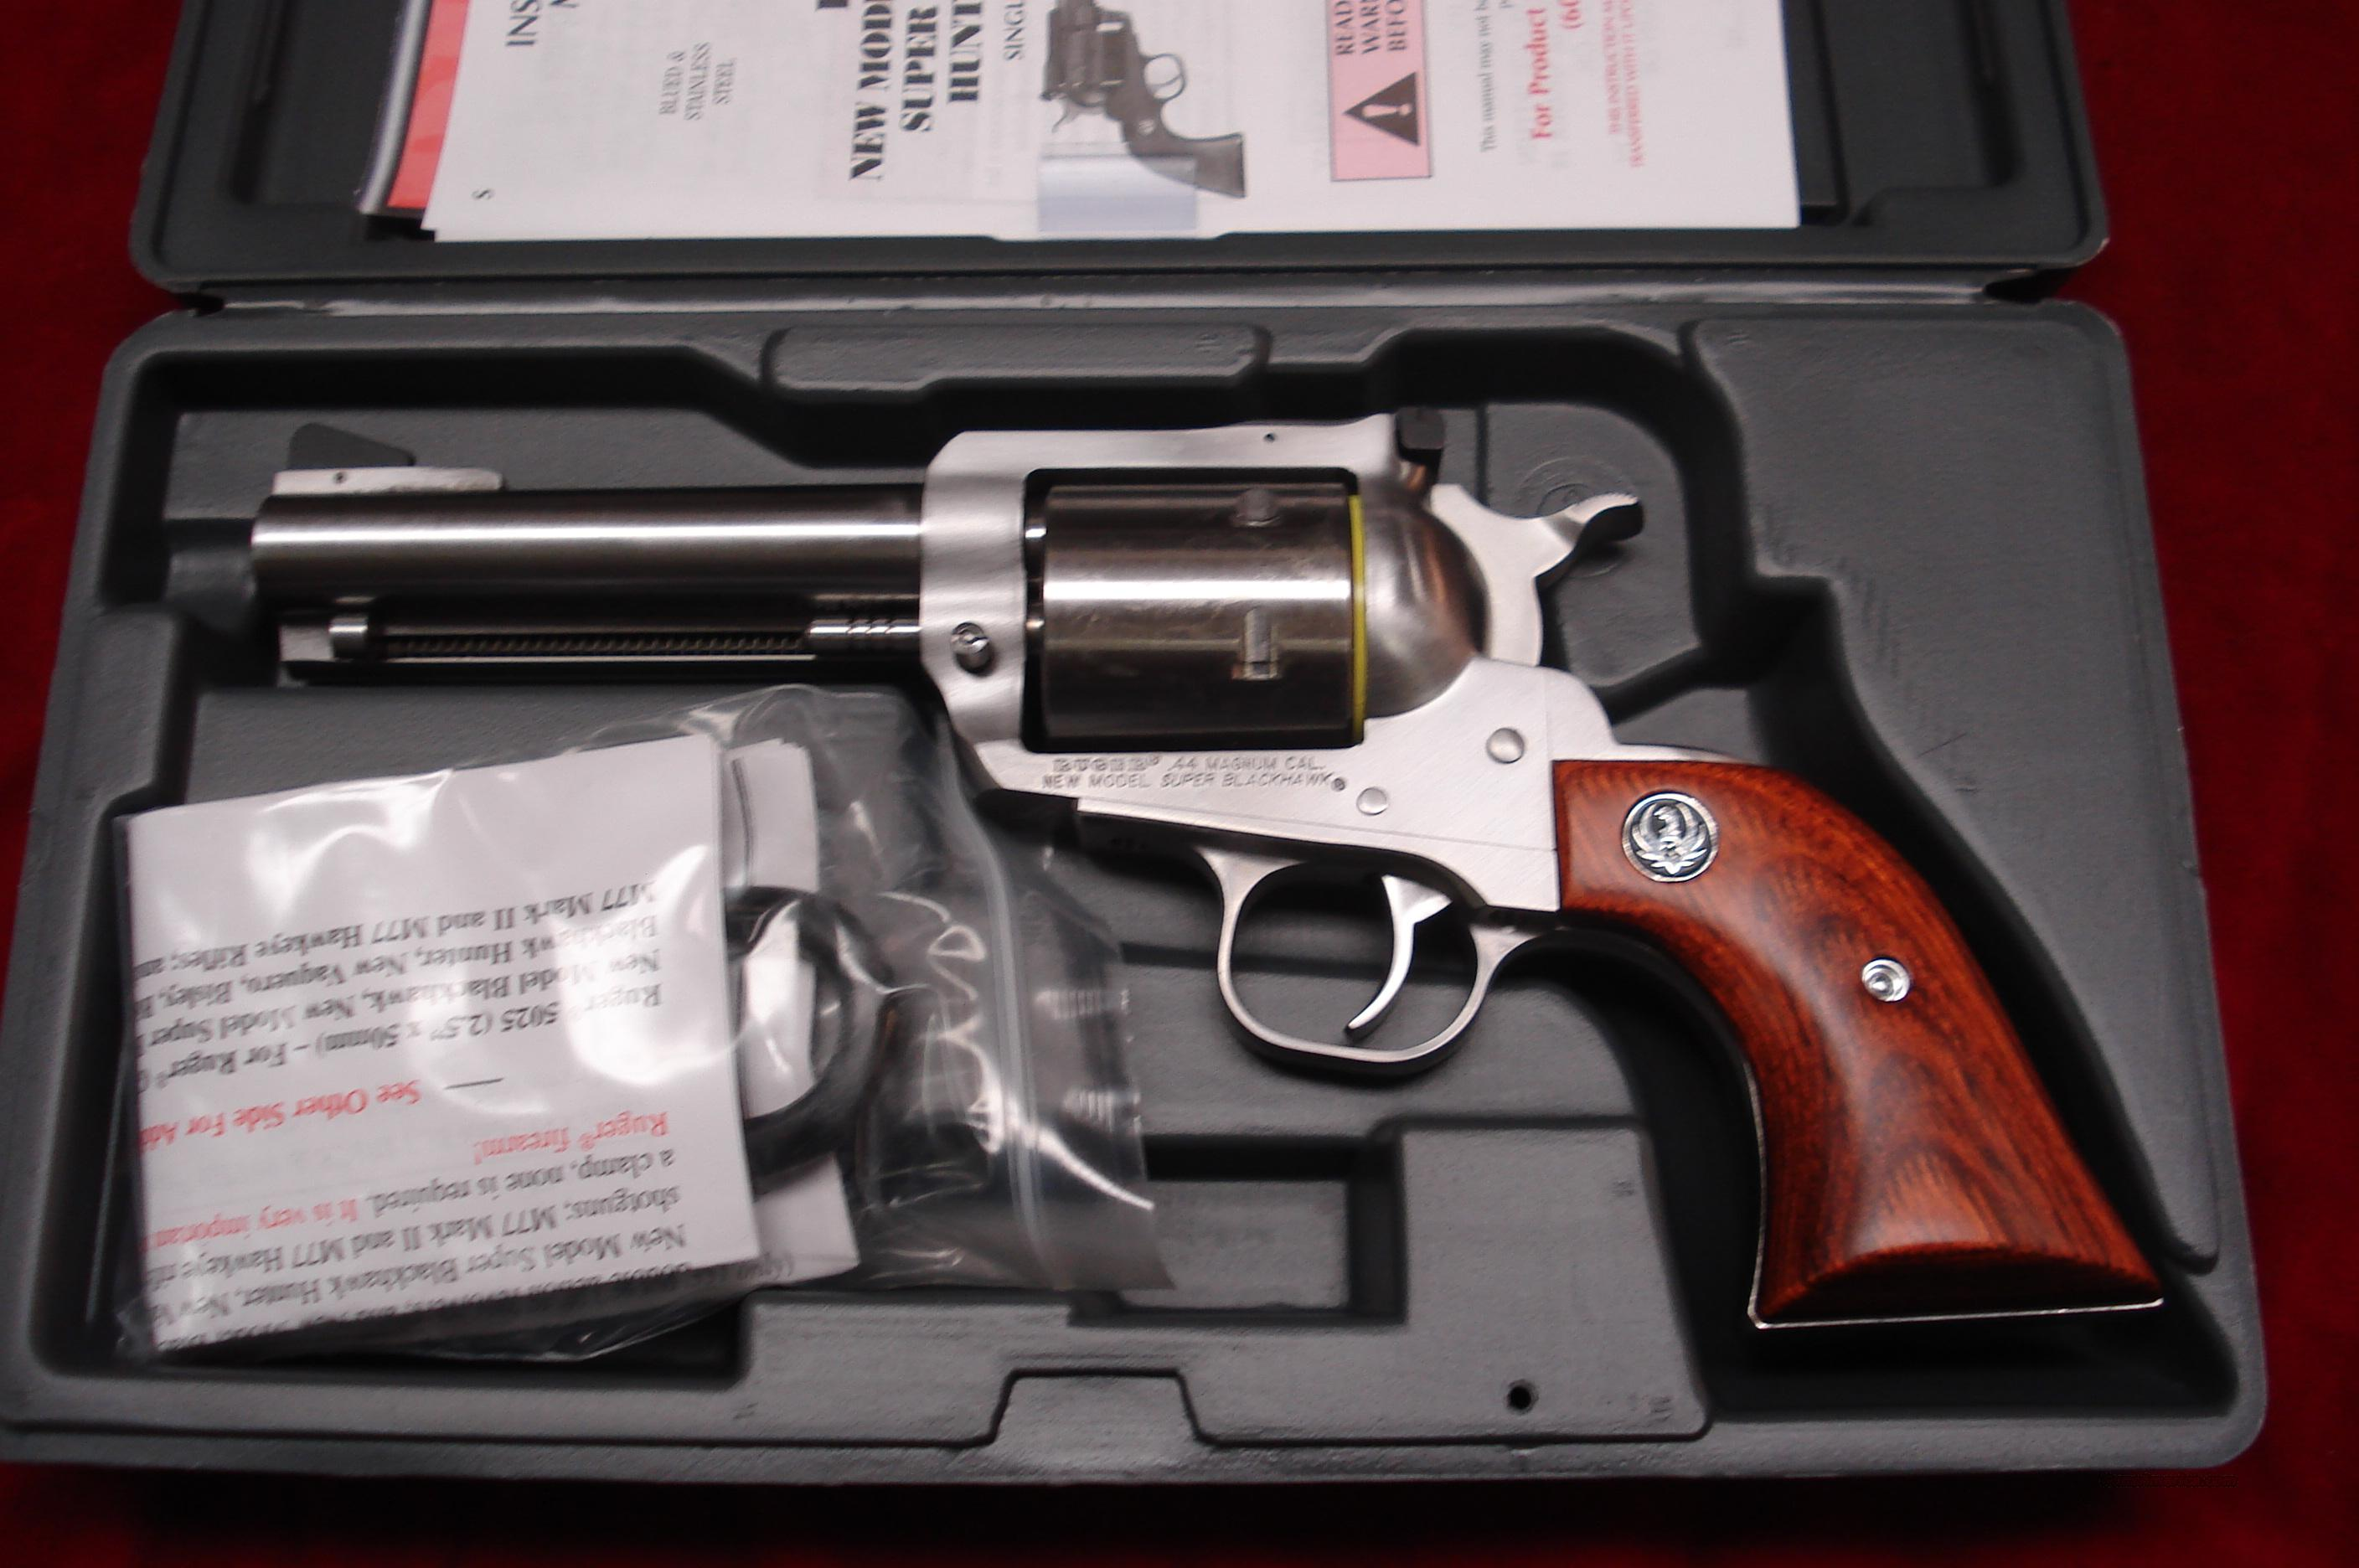 "RUGER SUPER BLACKHAWK 44MAG 4 5/8"" STAINLESS NEW (KS-458N)  Guns > Pistols > Ruger Single Action Revolvers > Blackhawk Type"